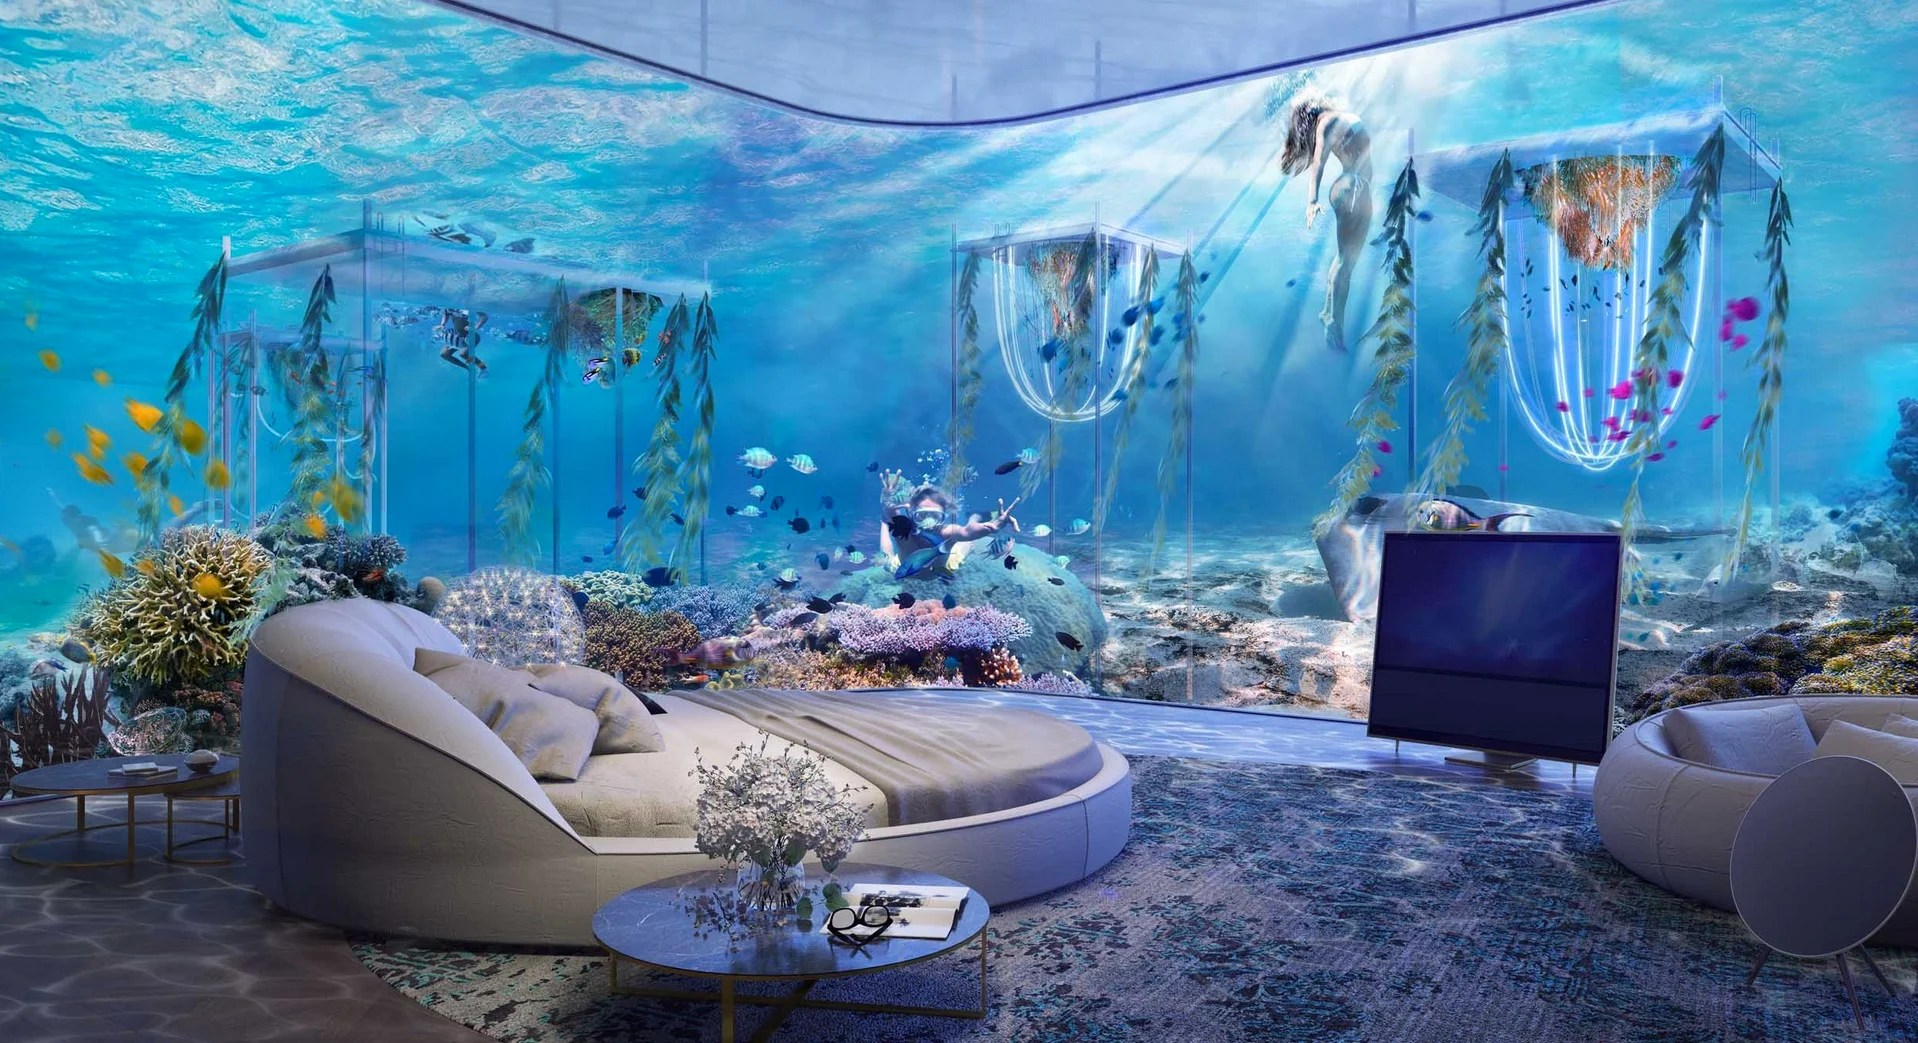 World s first underwater luxury vessel resort coming to dubai for Luxury travel in dubai